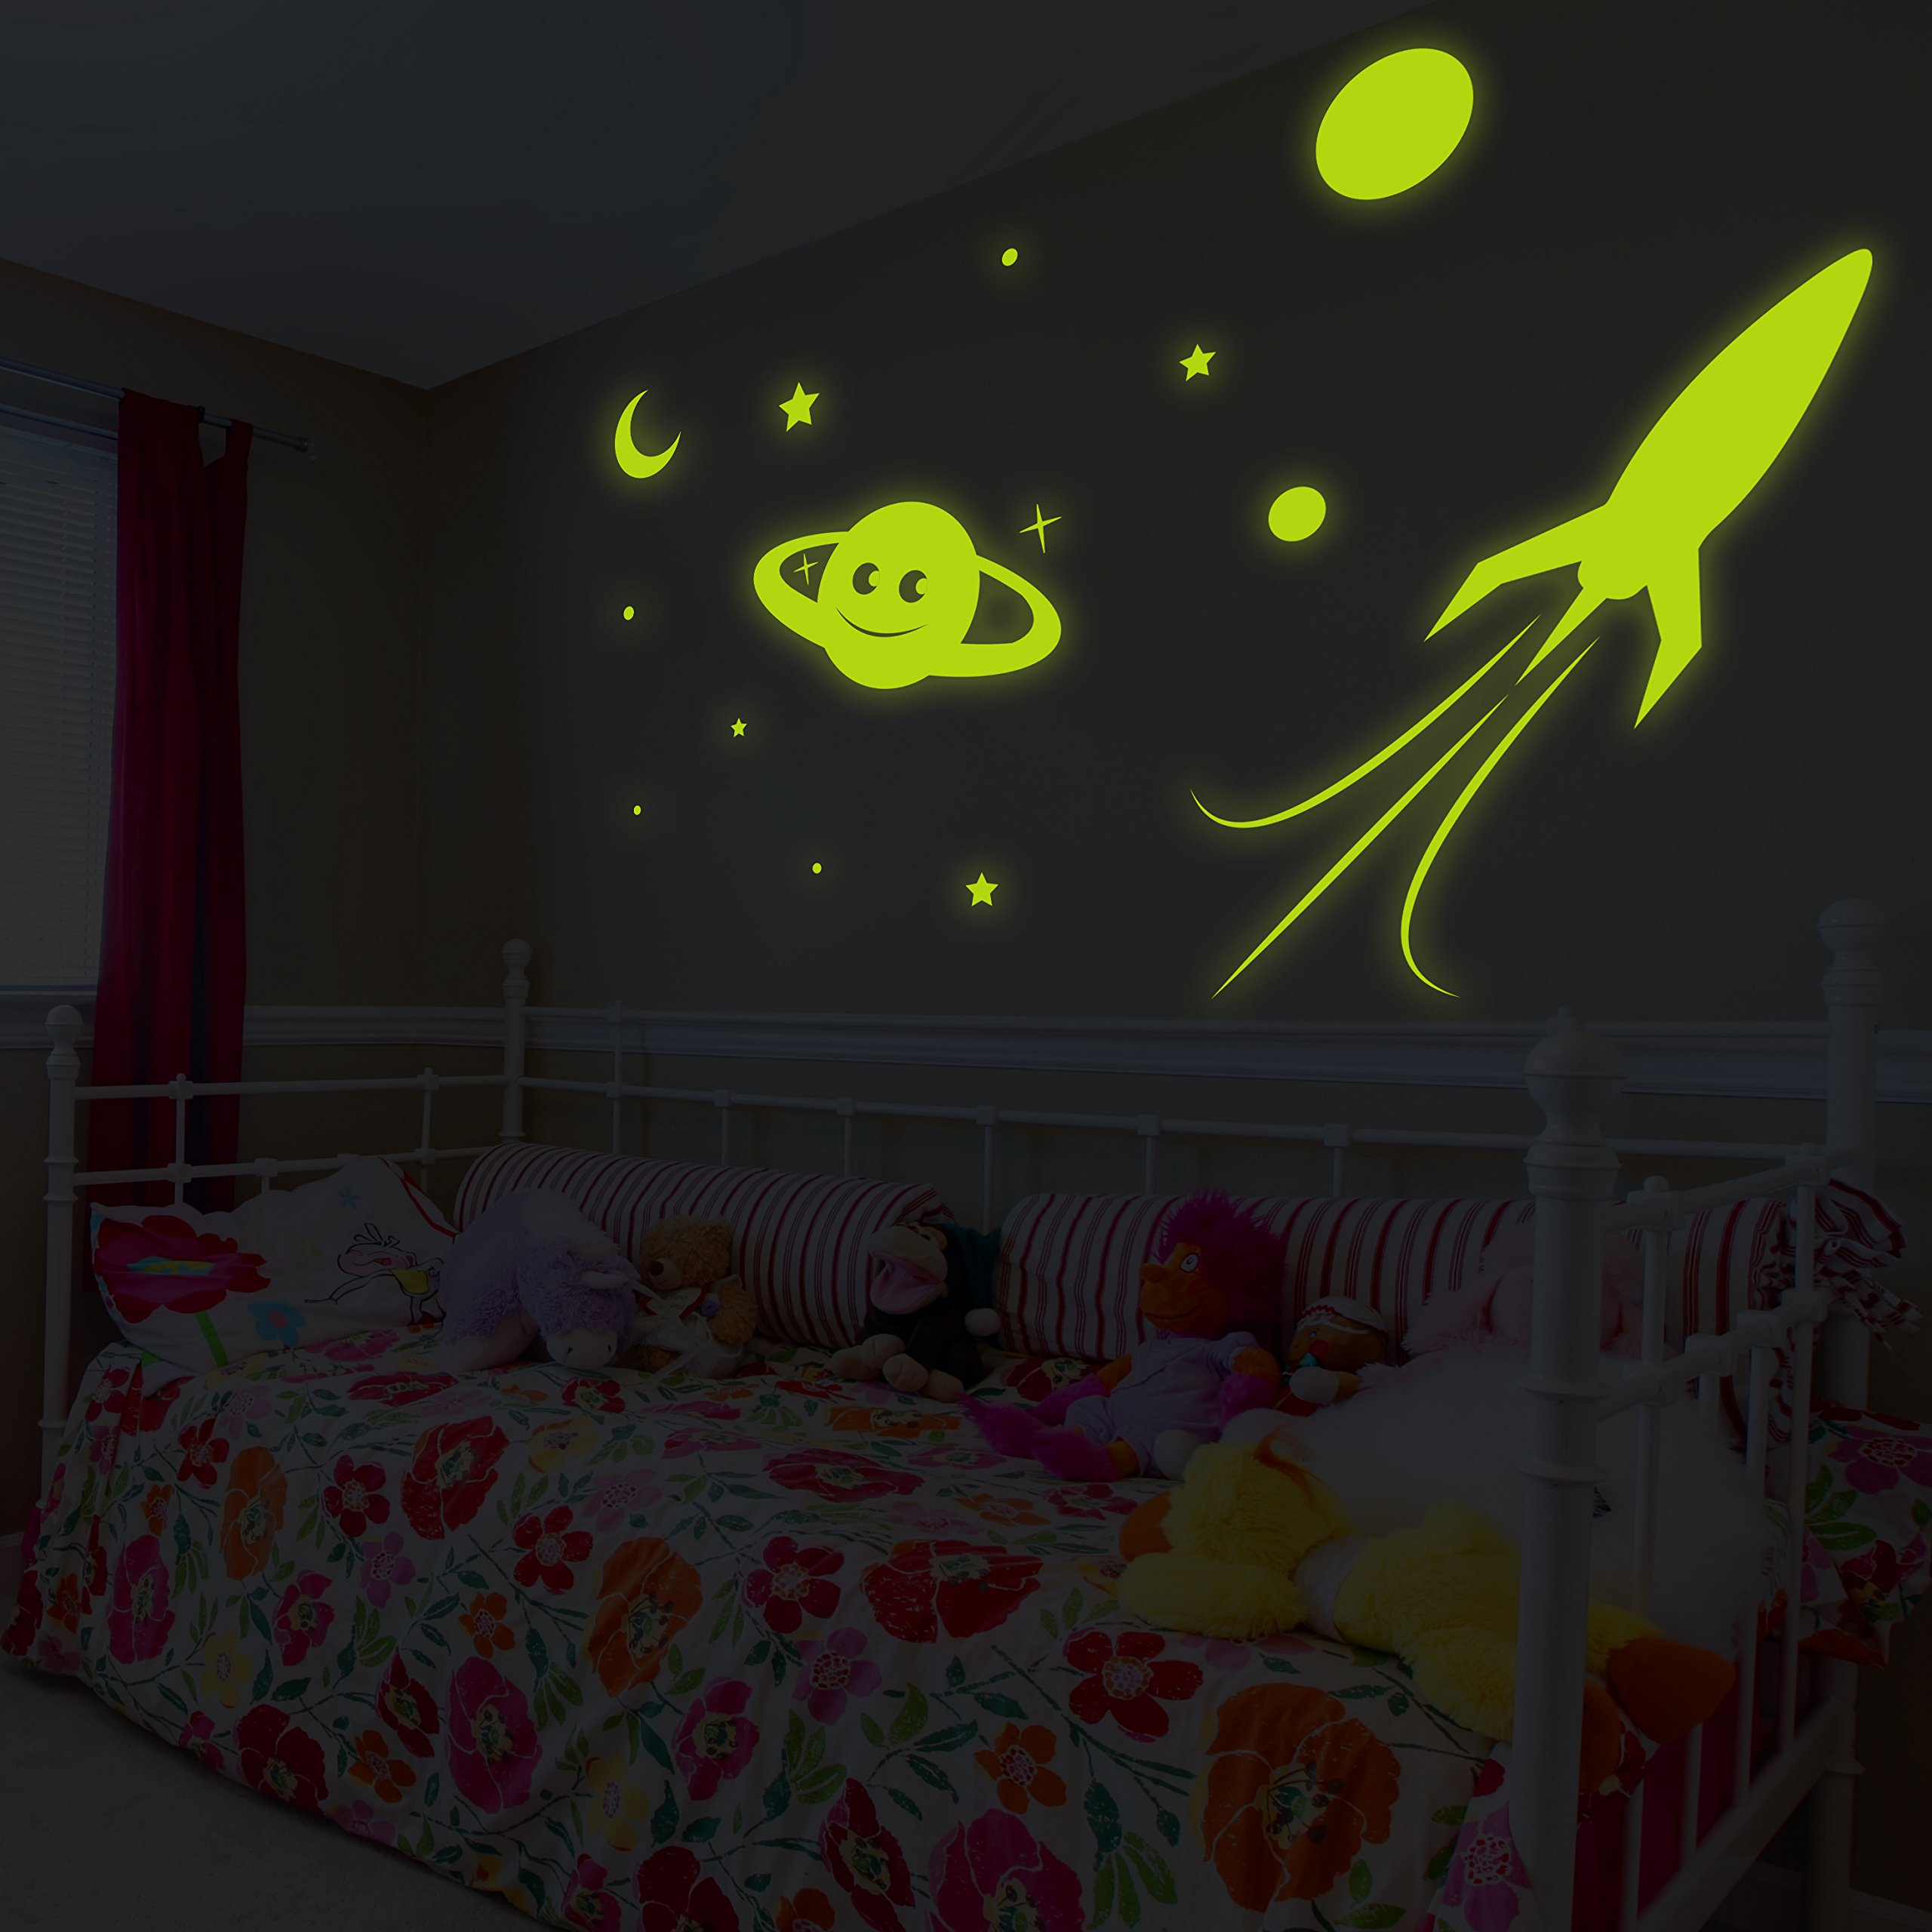 ( 55'' x 37'' ) Glowing Vinyl Wall Decal Planet, Rocket, Stars / Glow in the Dark Sticker / Сrescent Luminescent Mural Kids, Baby Room + Free Decal Gift!